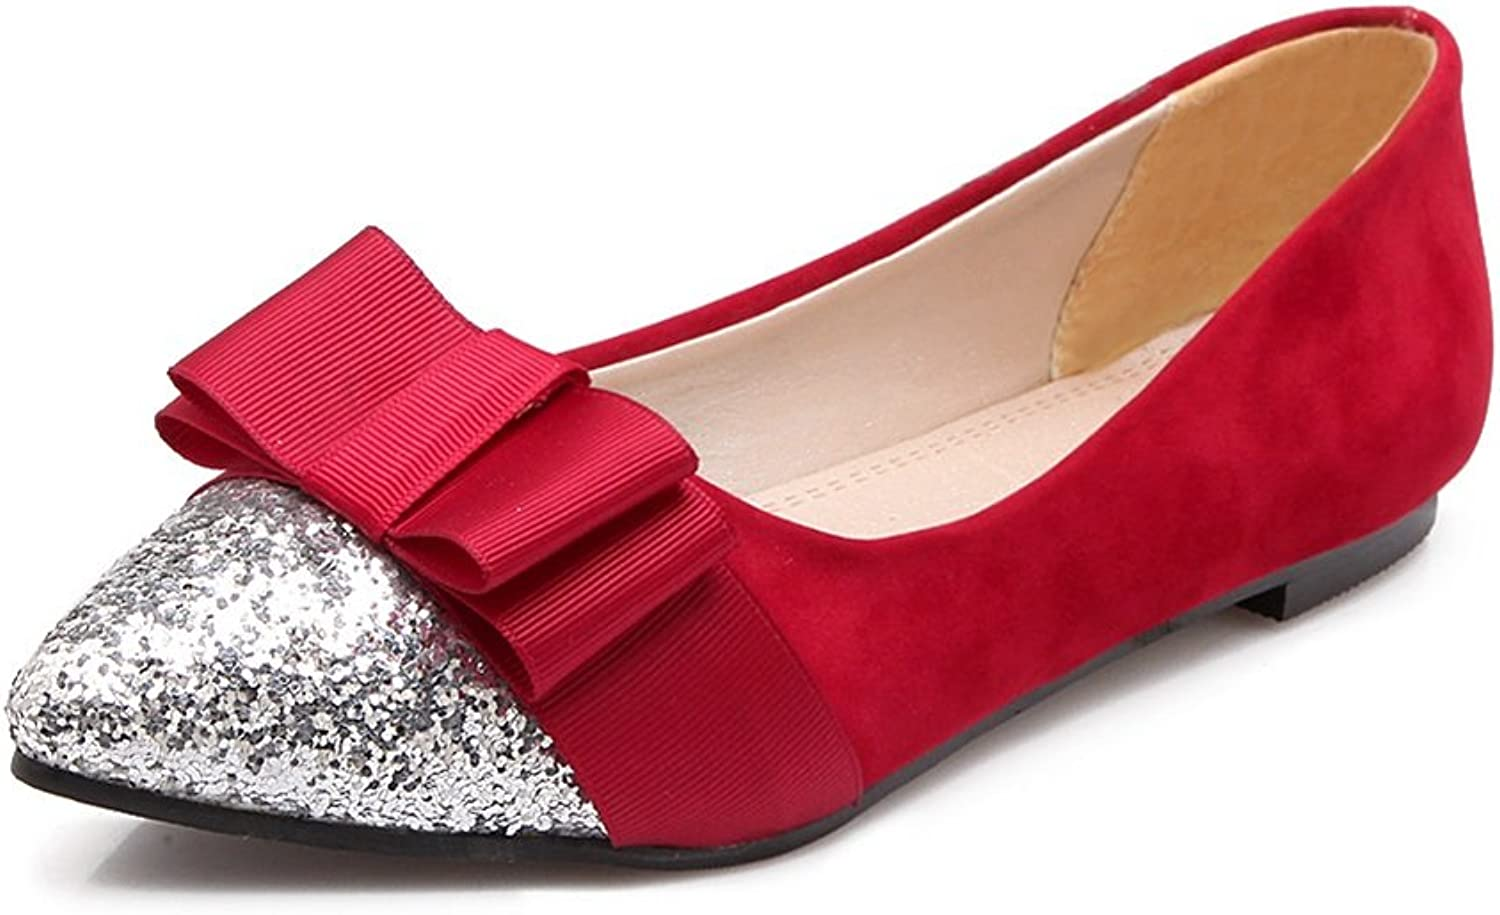 Exing Women's shoes Large Size Ladies shoes with Low-Heeled Sequined Bow Single shoes